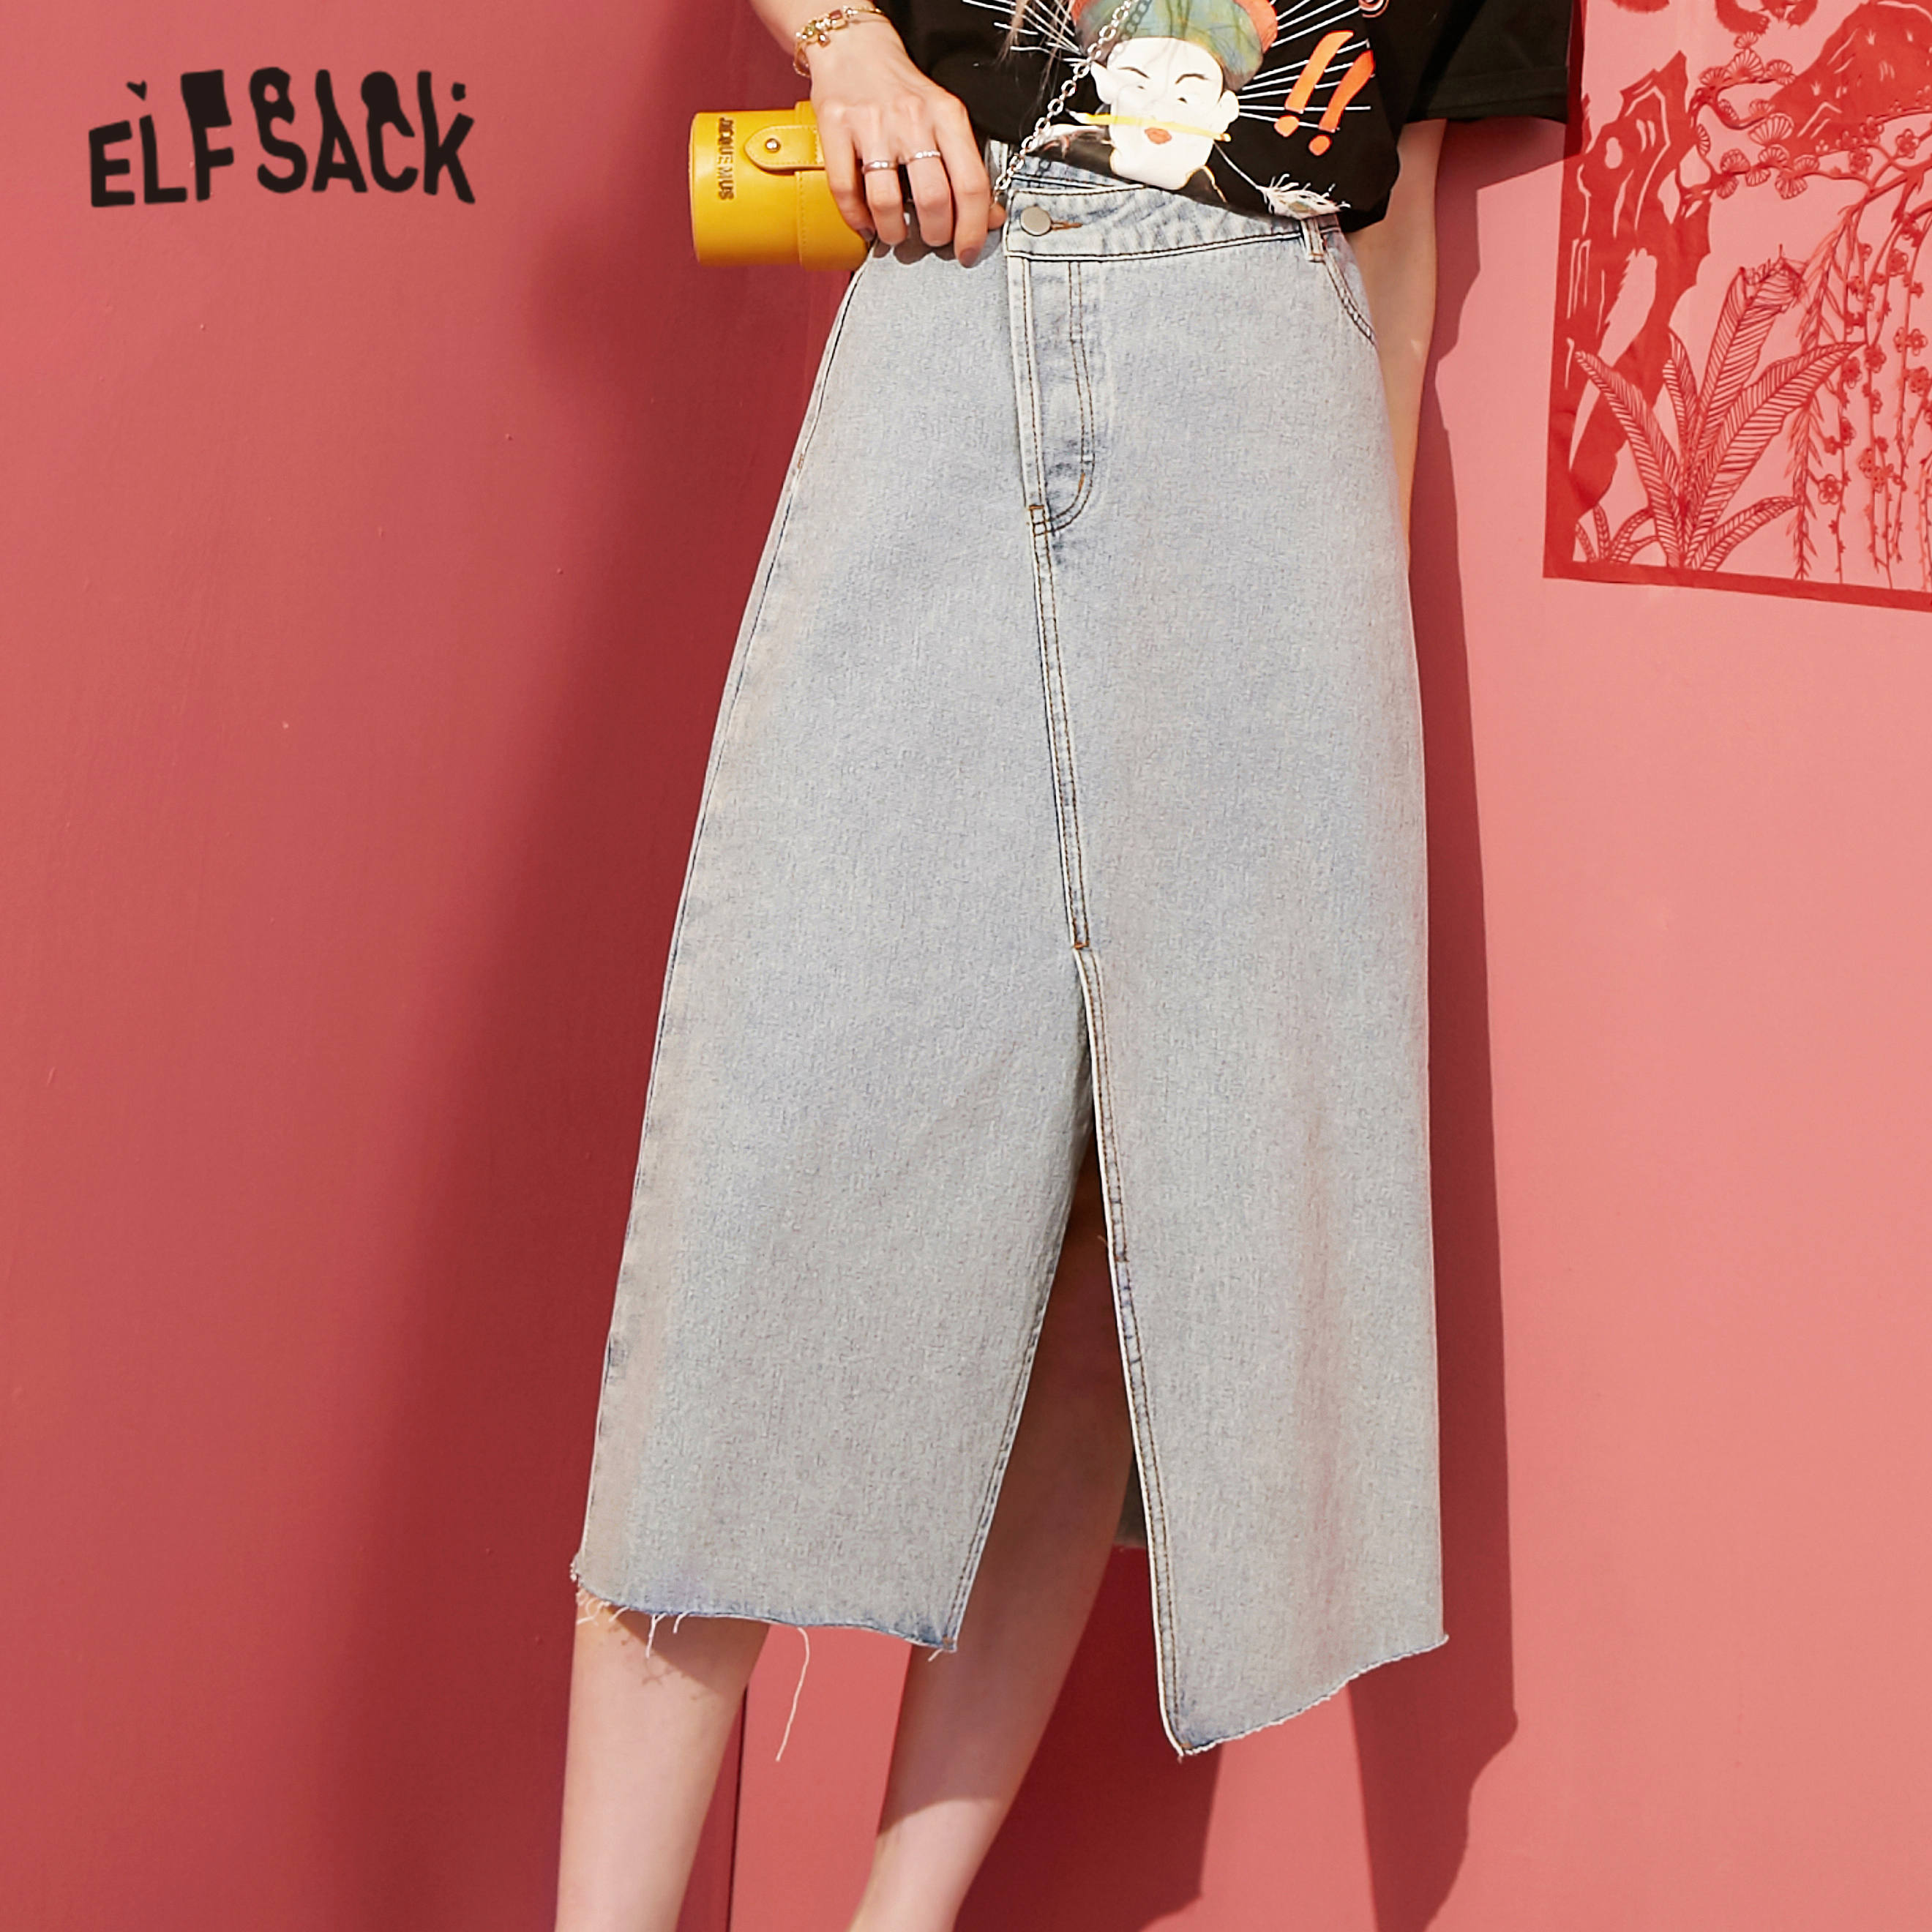 ELFSACK Blue Solid Irregular Hem Casual Women Long Skirts 2020 Spring New Elegant High Waist Korean Ladies Daily Denim Skirt